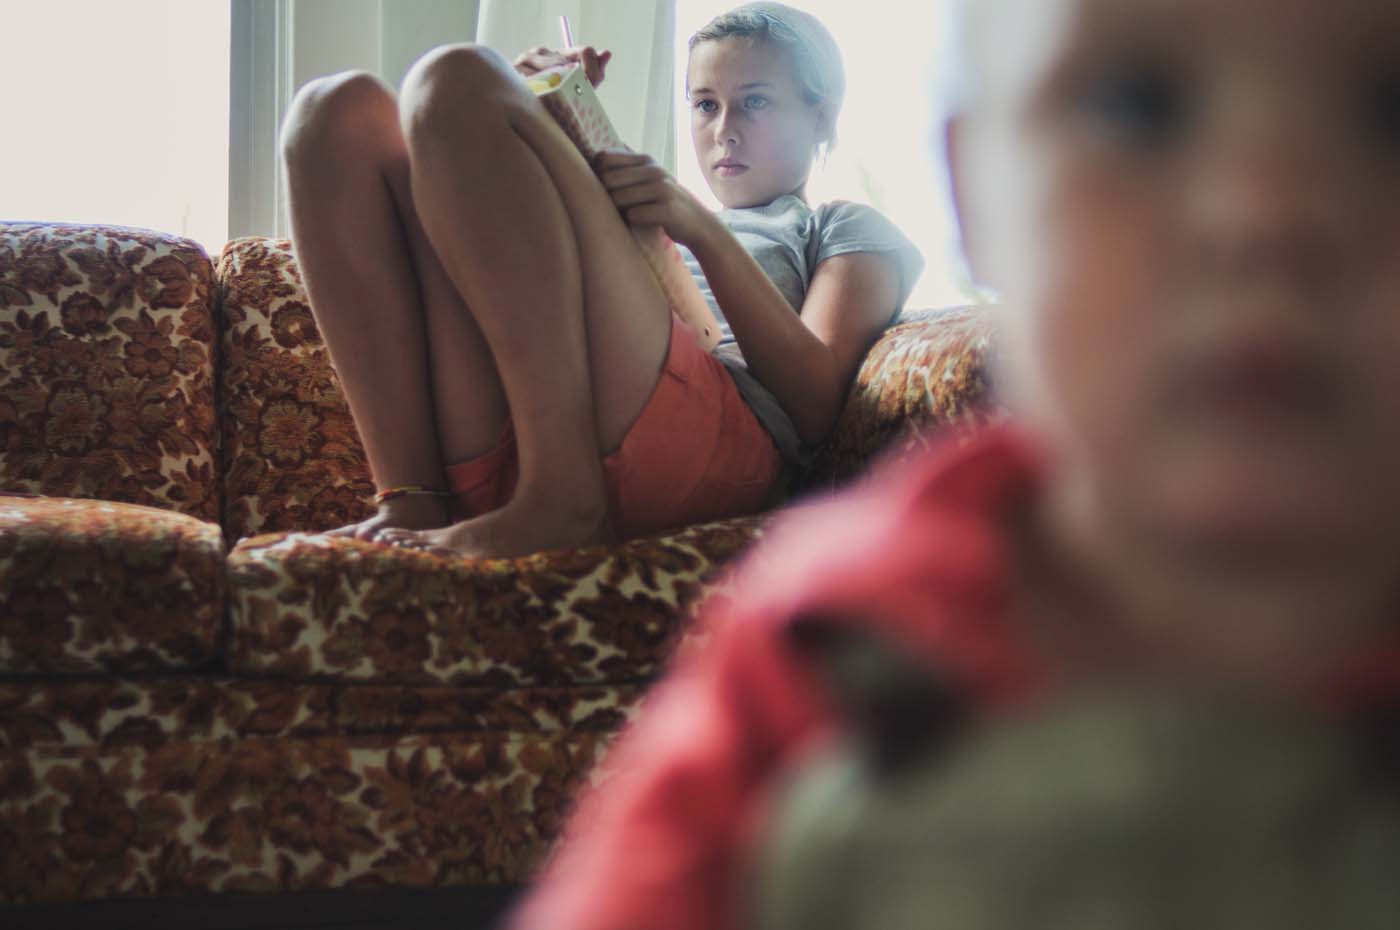 Concentration by Jessica Uhler